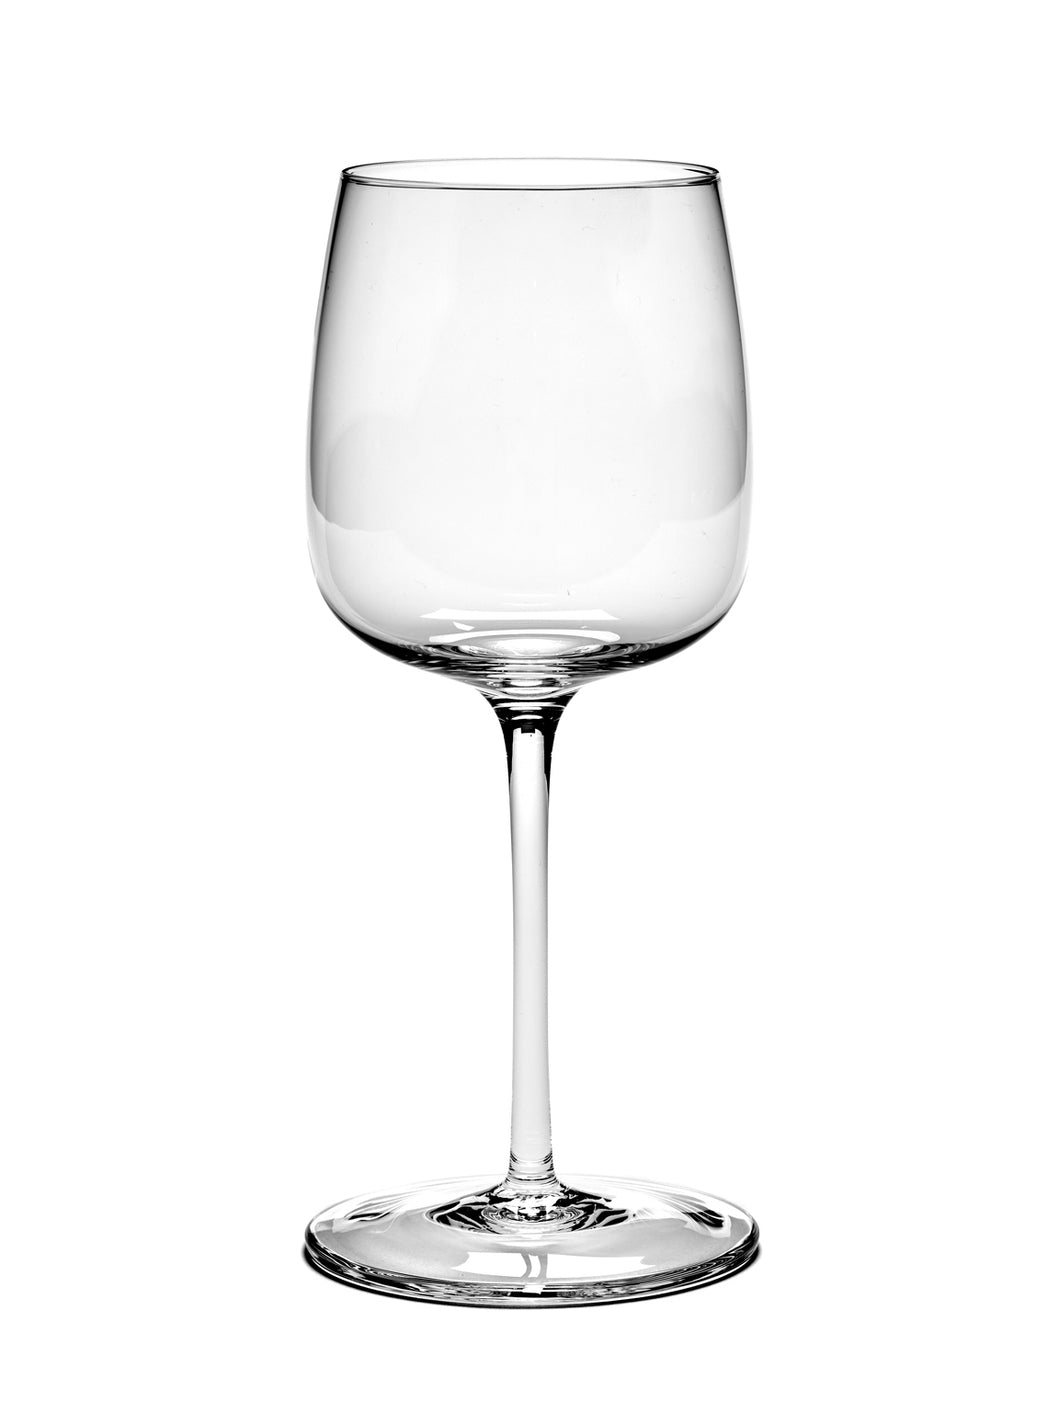 Passe partout White wine glass curved